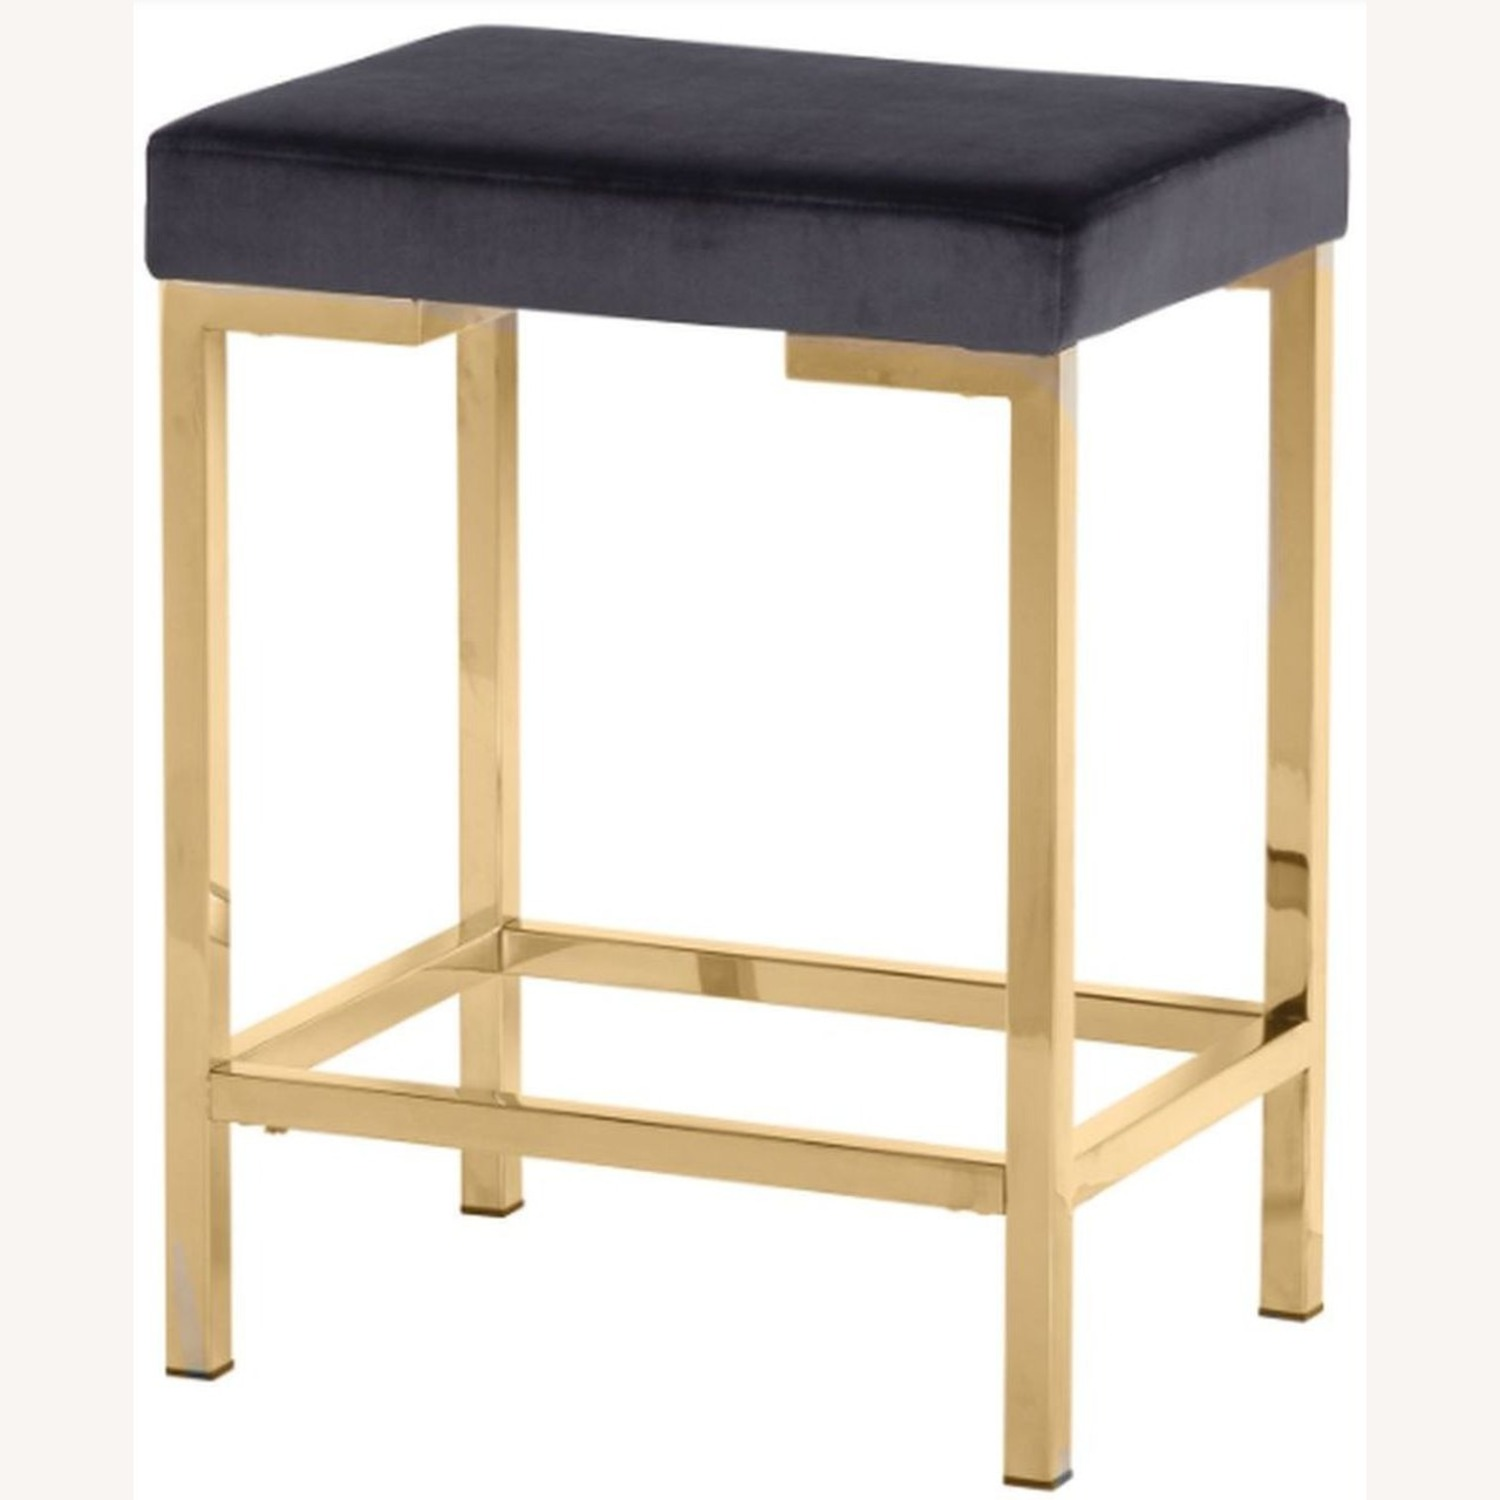 Minimalist Counter Height Stool In Charcoal Grey - image-1